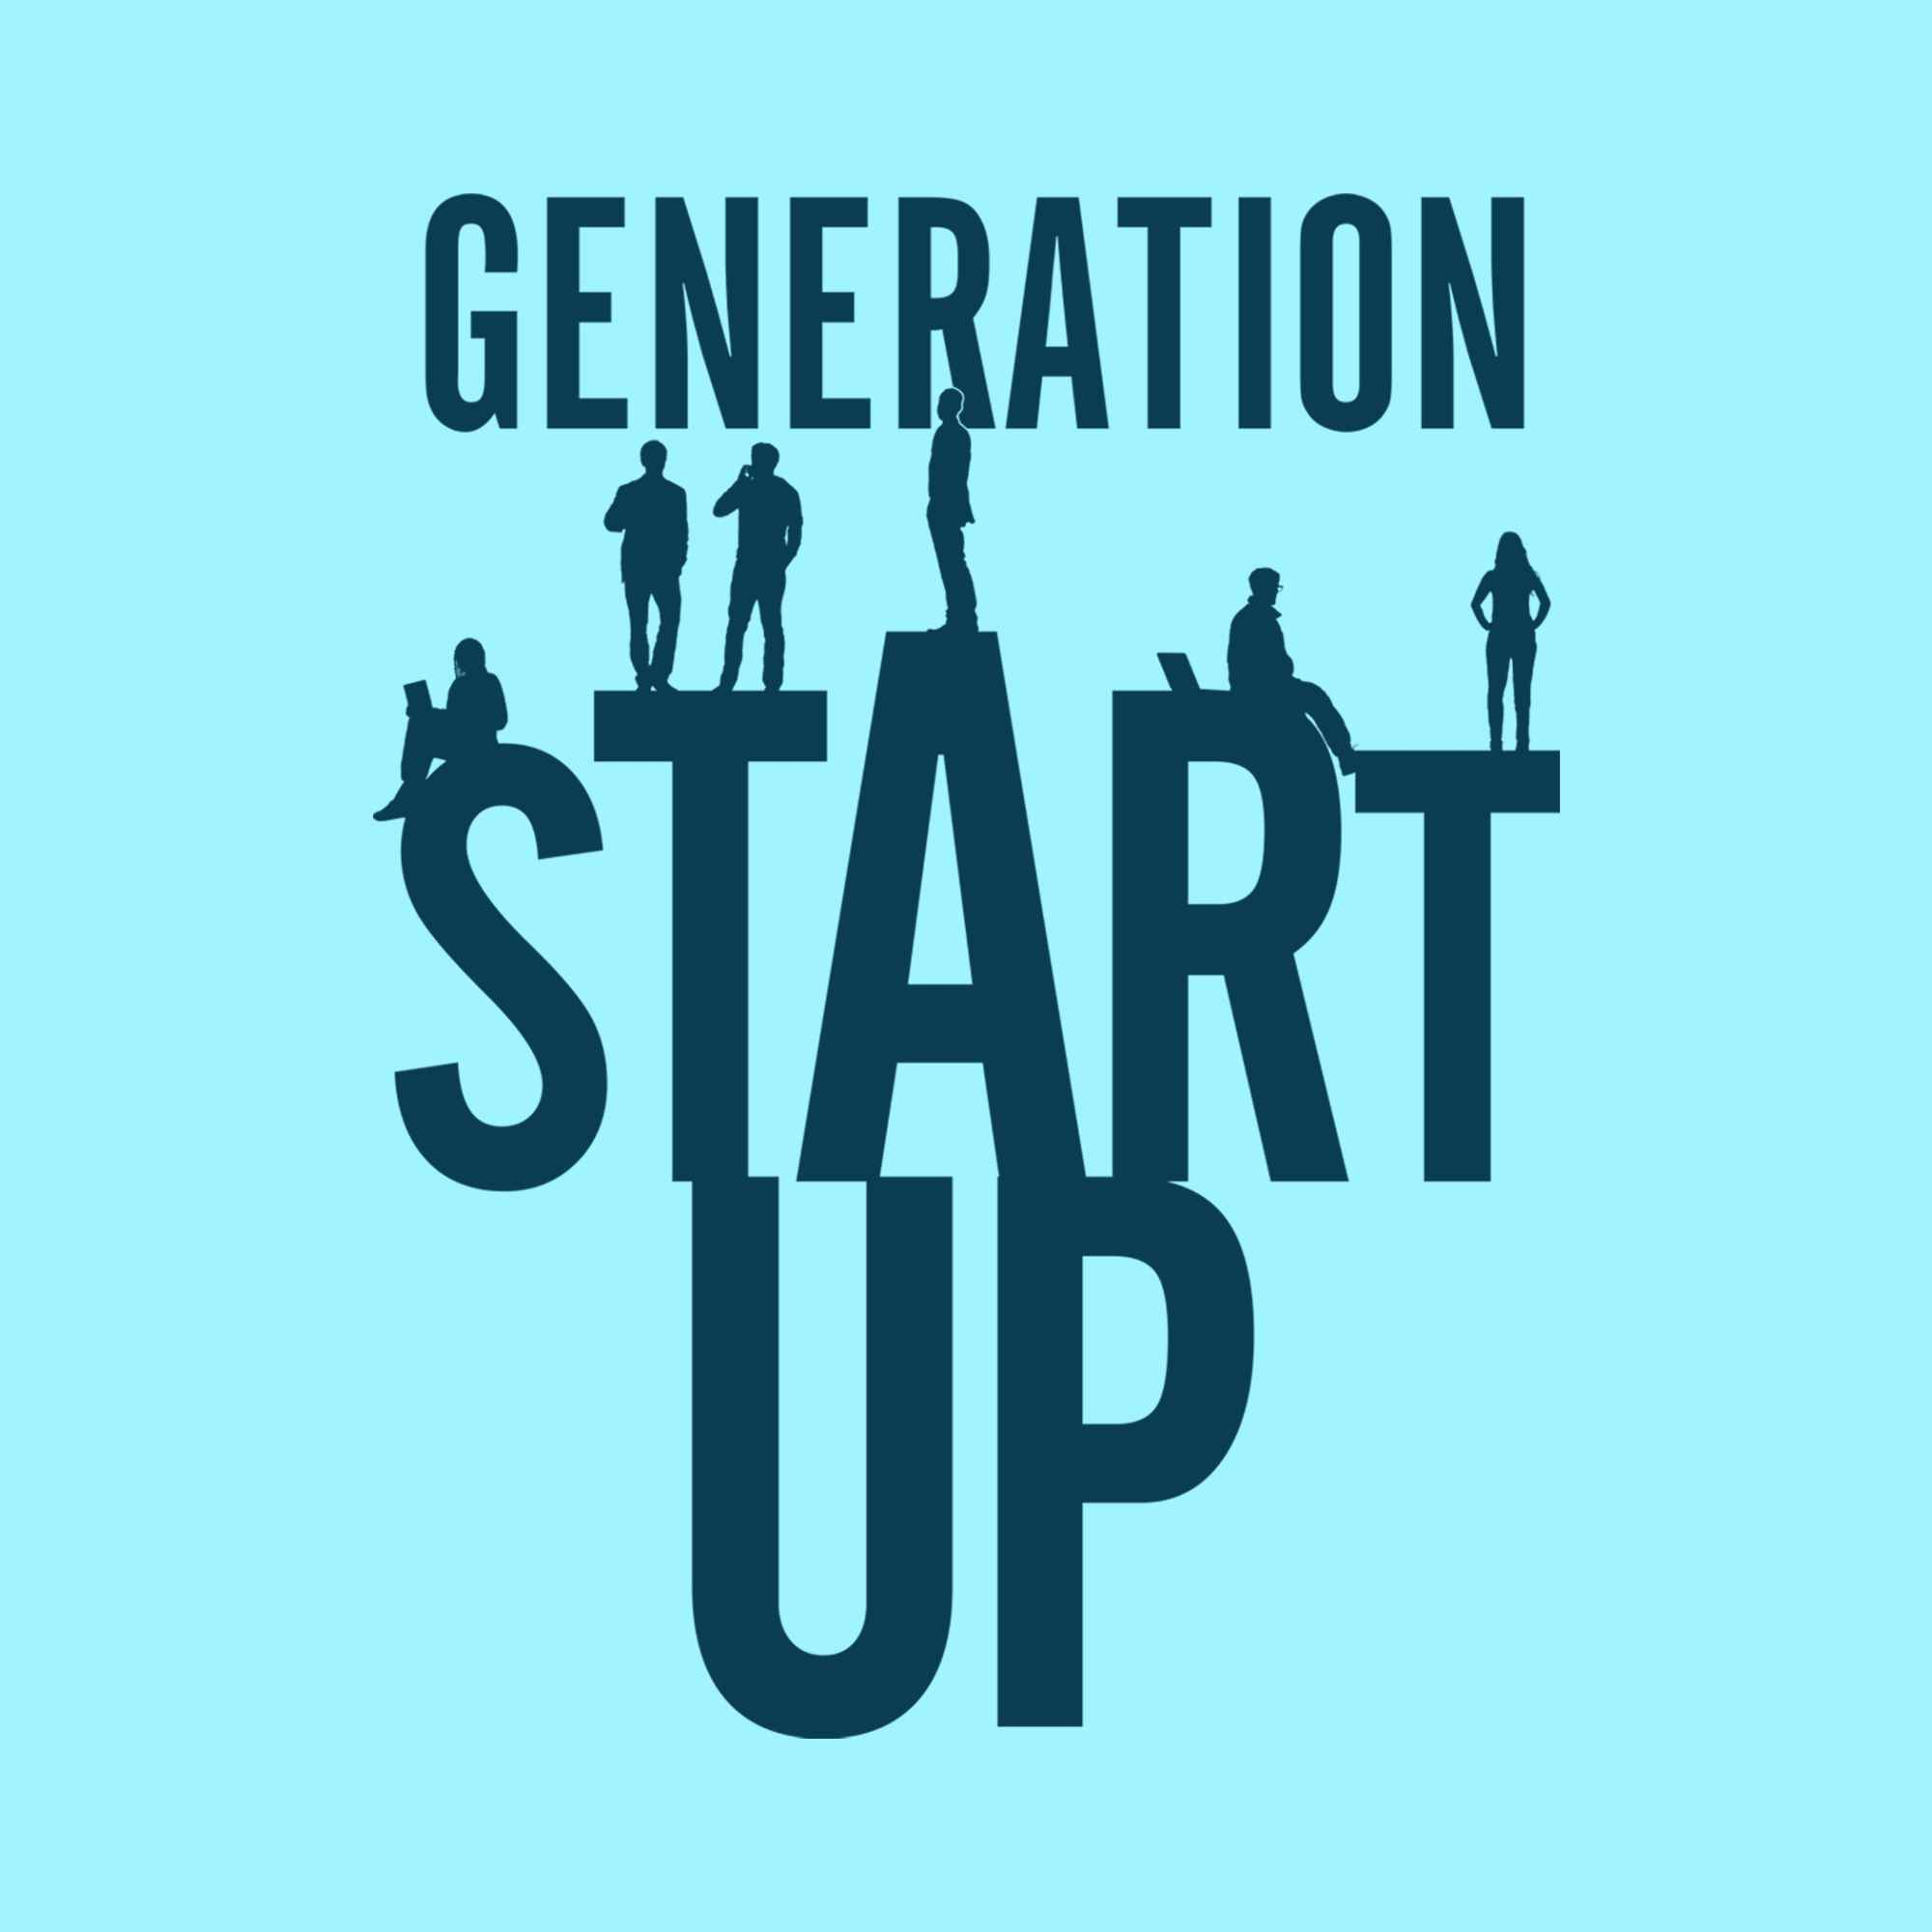 Generation Startup - the Movie